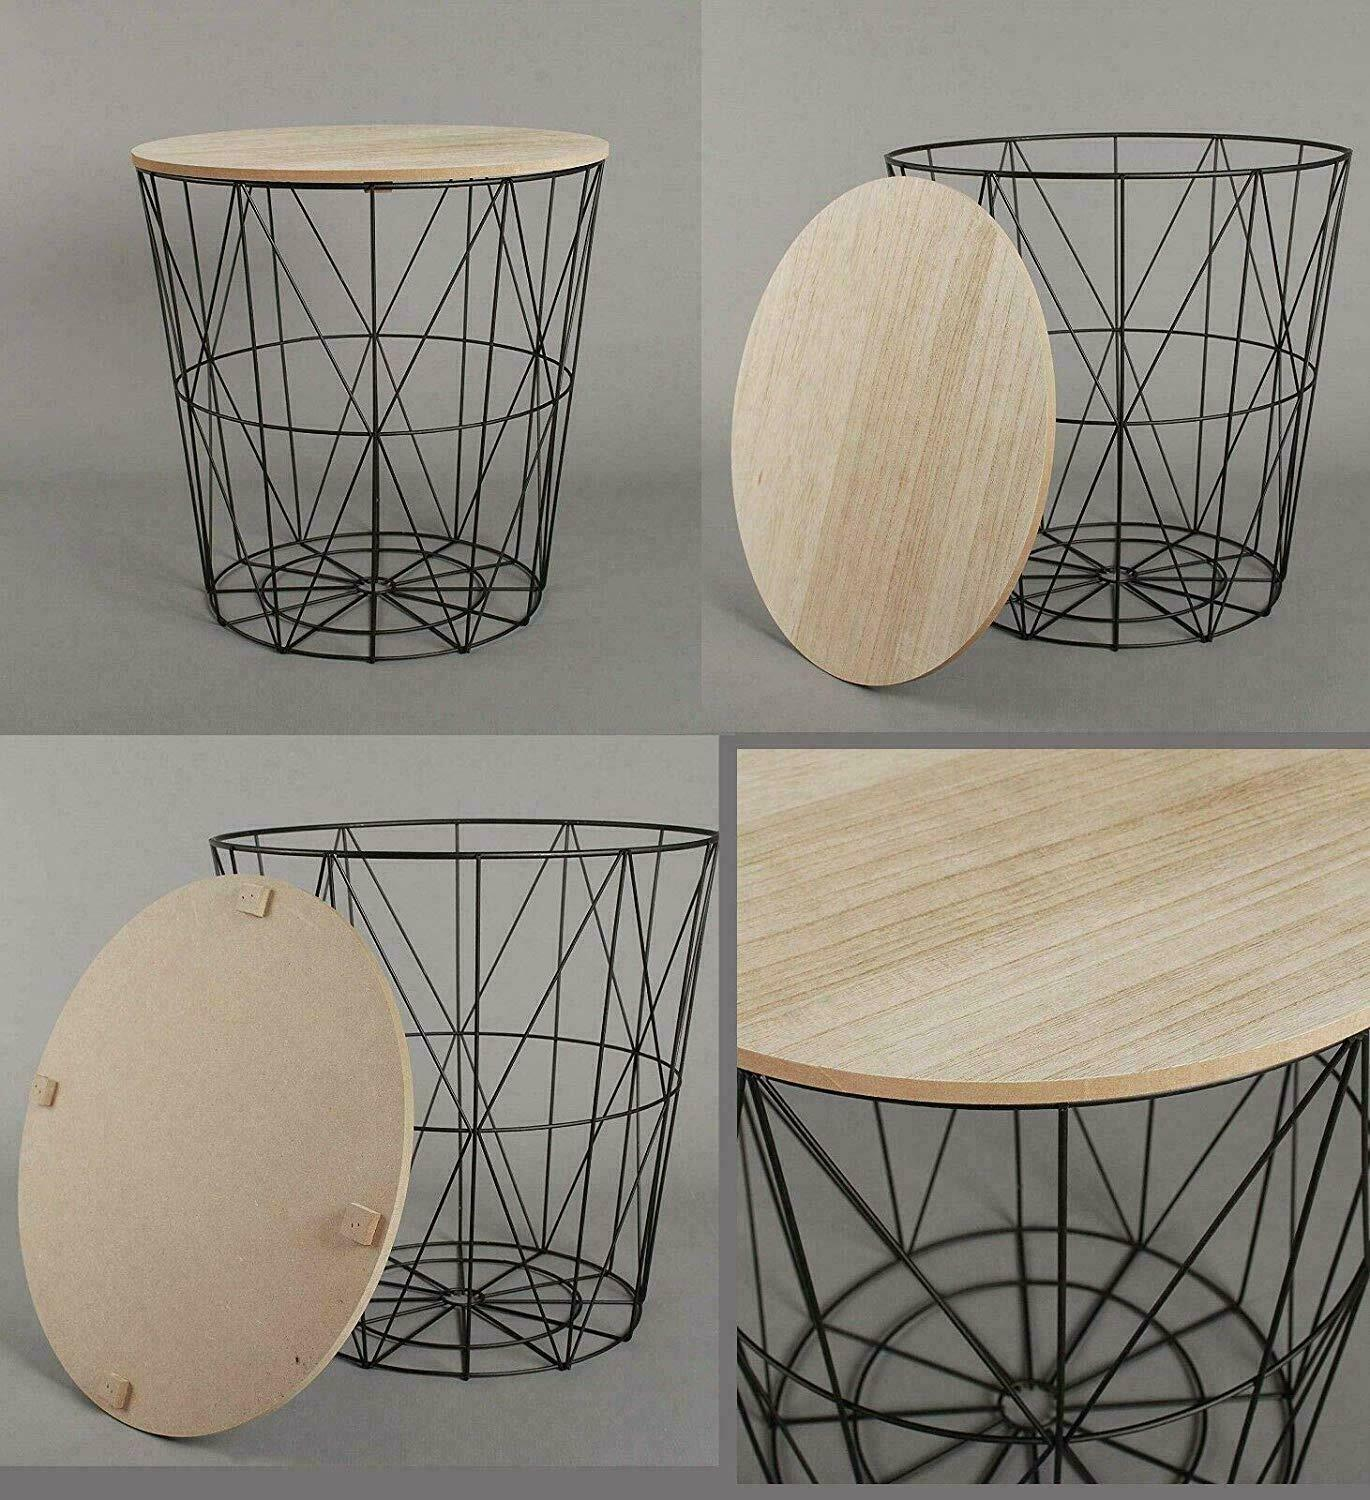 Retro Side Table Black Metal Wire Round Wood Top Storage Basket Home Furniture For Sale Online